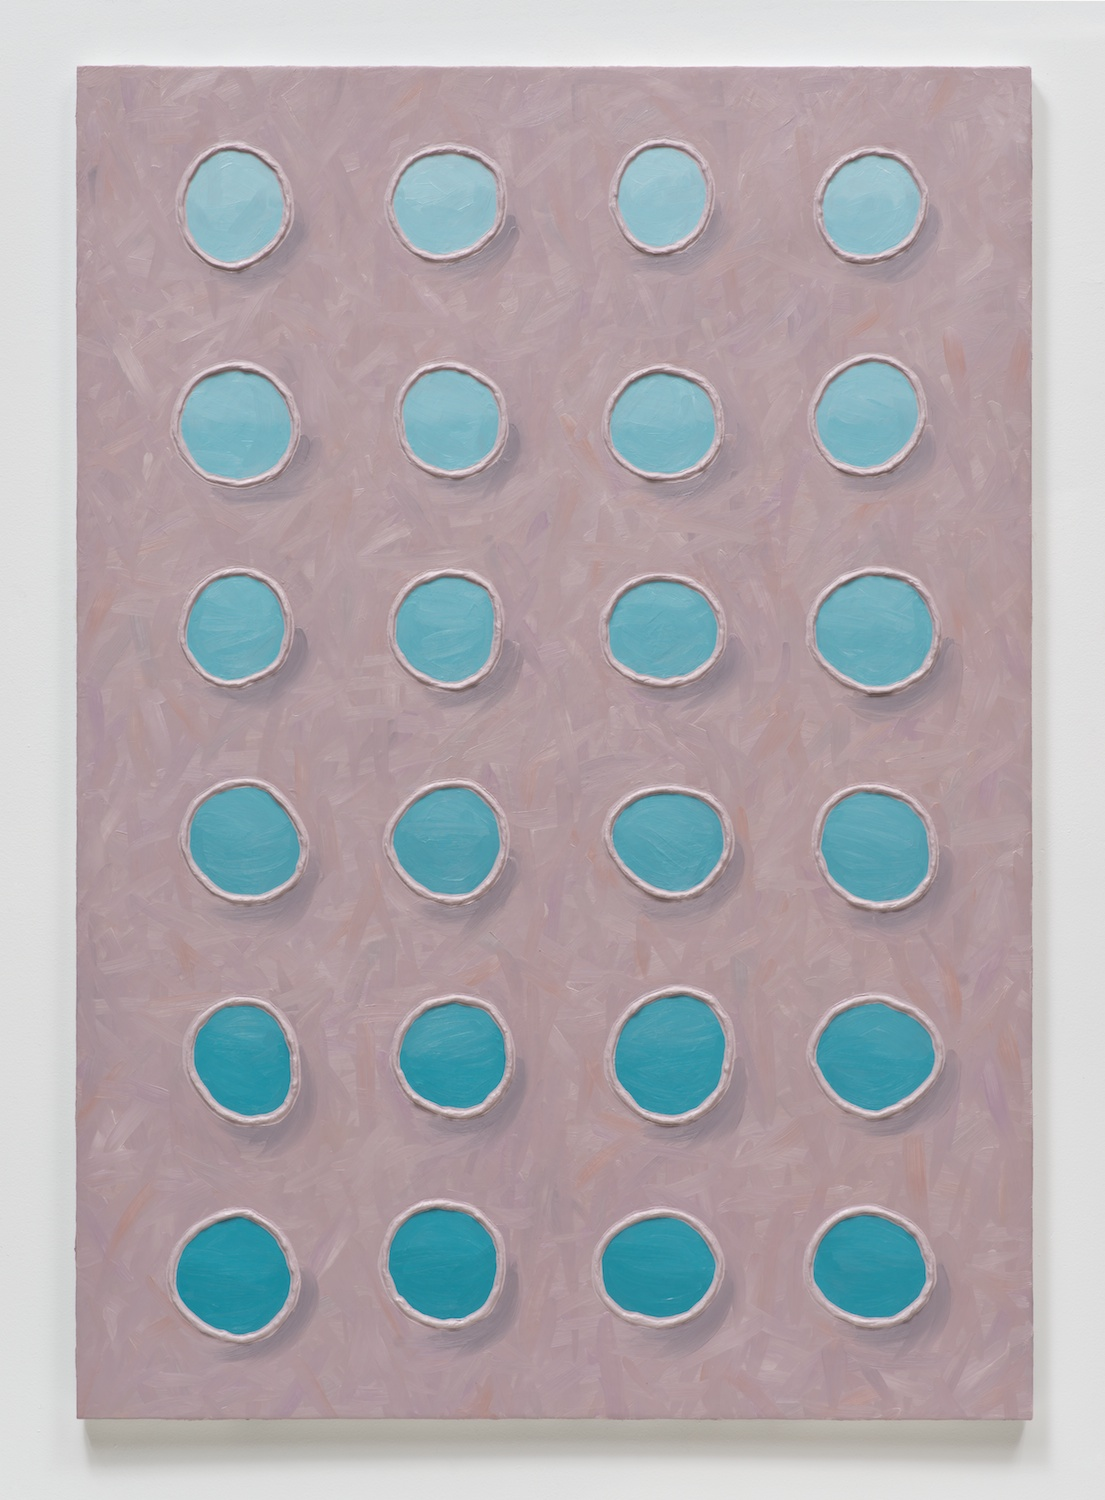 Alex Olson  Rote  2014 Oil and modeling paste on linen 51h x 36w in AO156